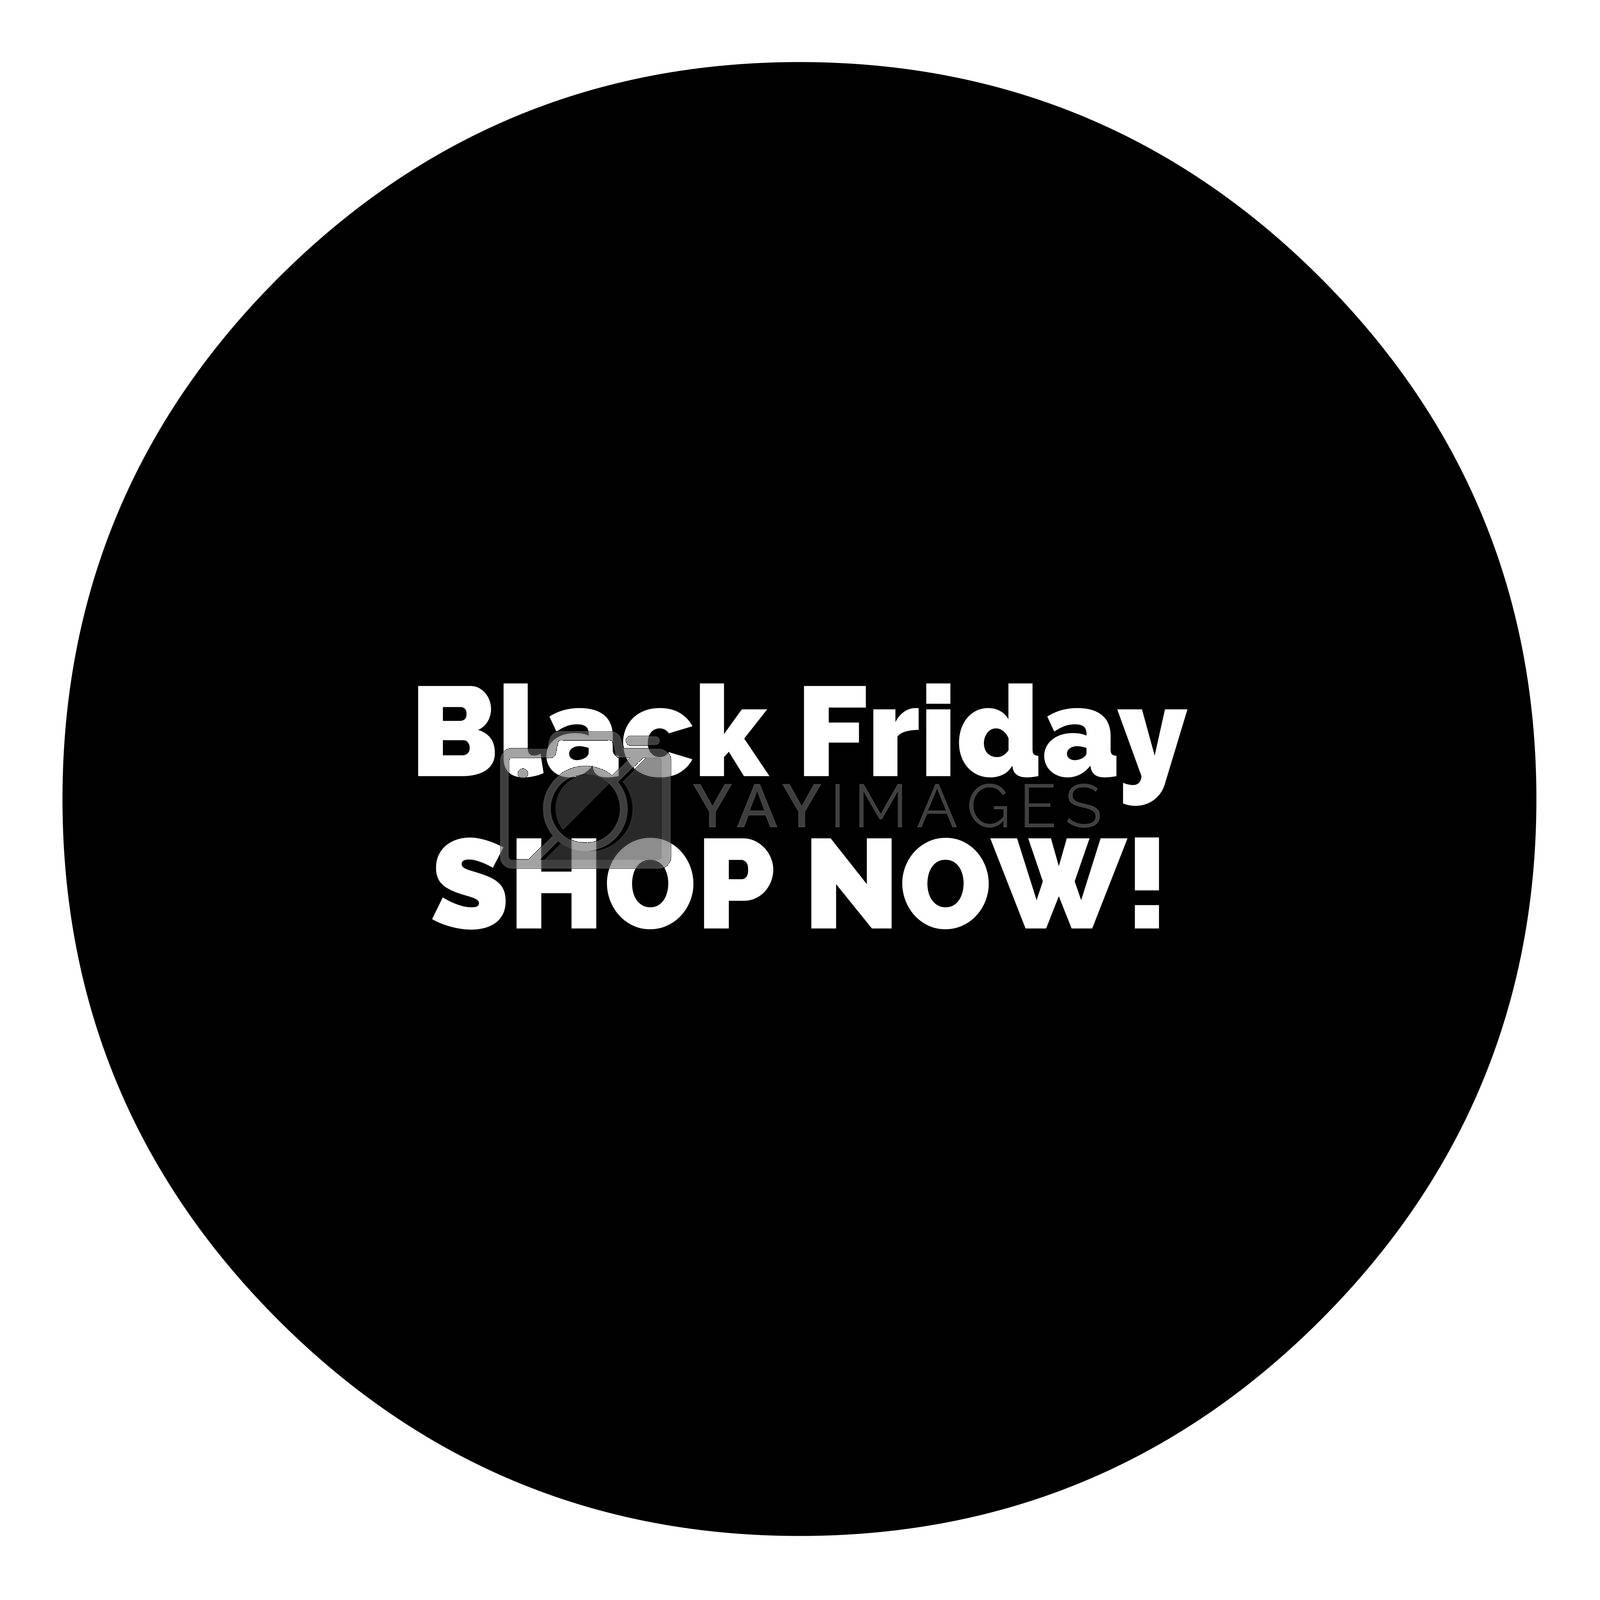 Black Friday. SHOP NOW! Designers shopping sign for your shop by Lordalea